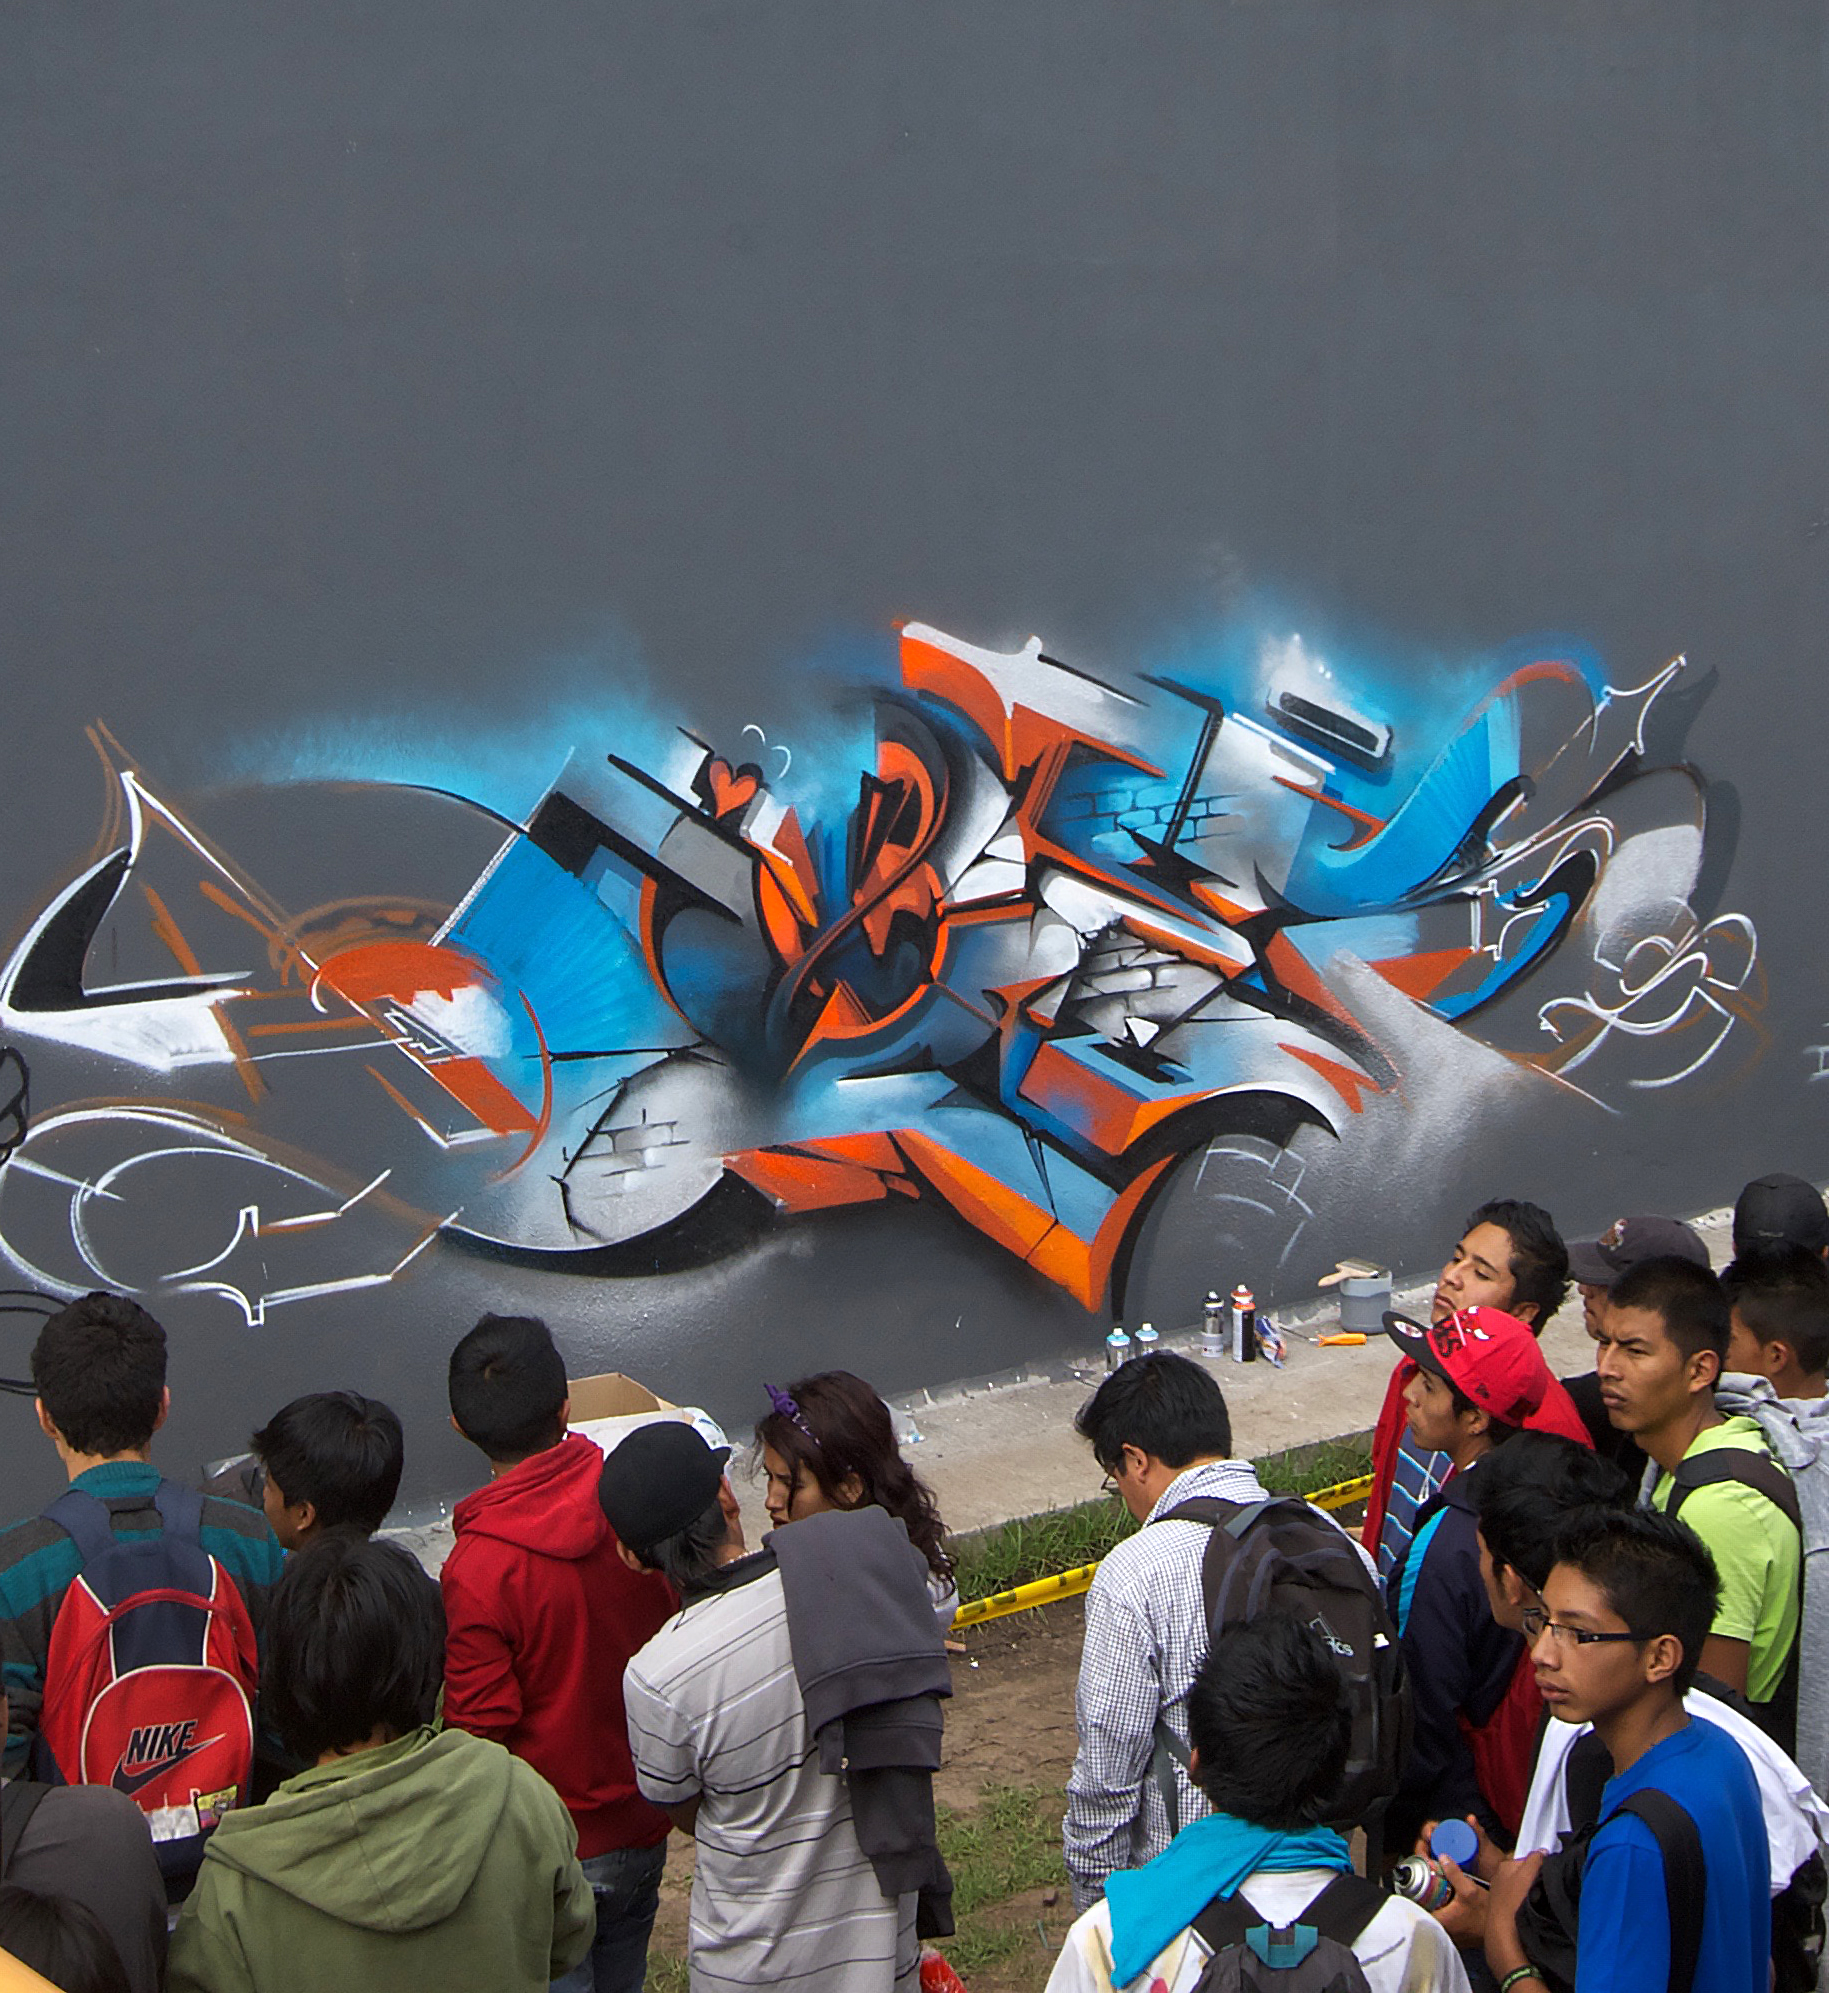 A work by Does - Quito equador crowd work in progress